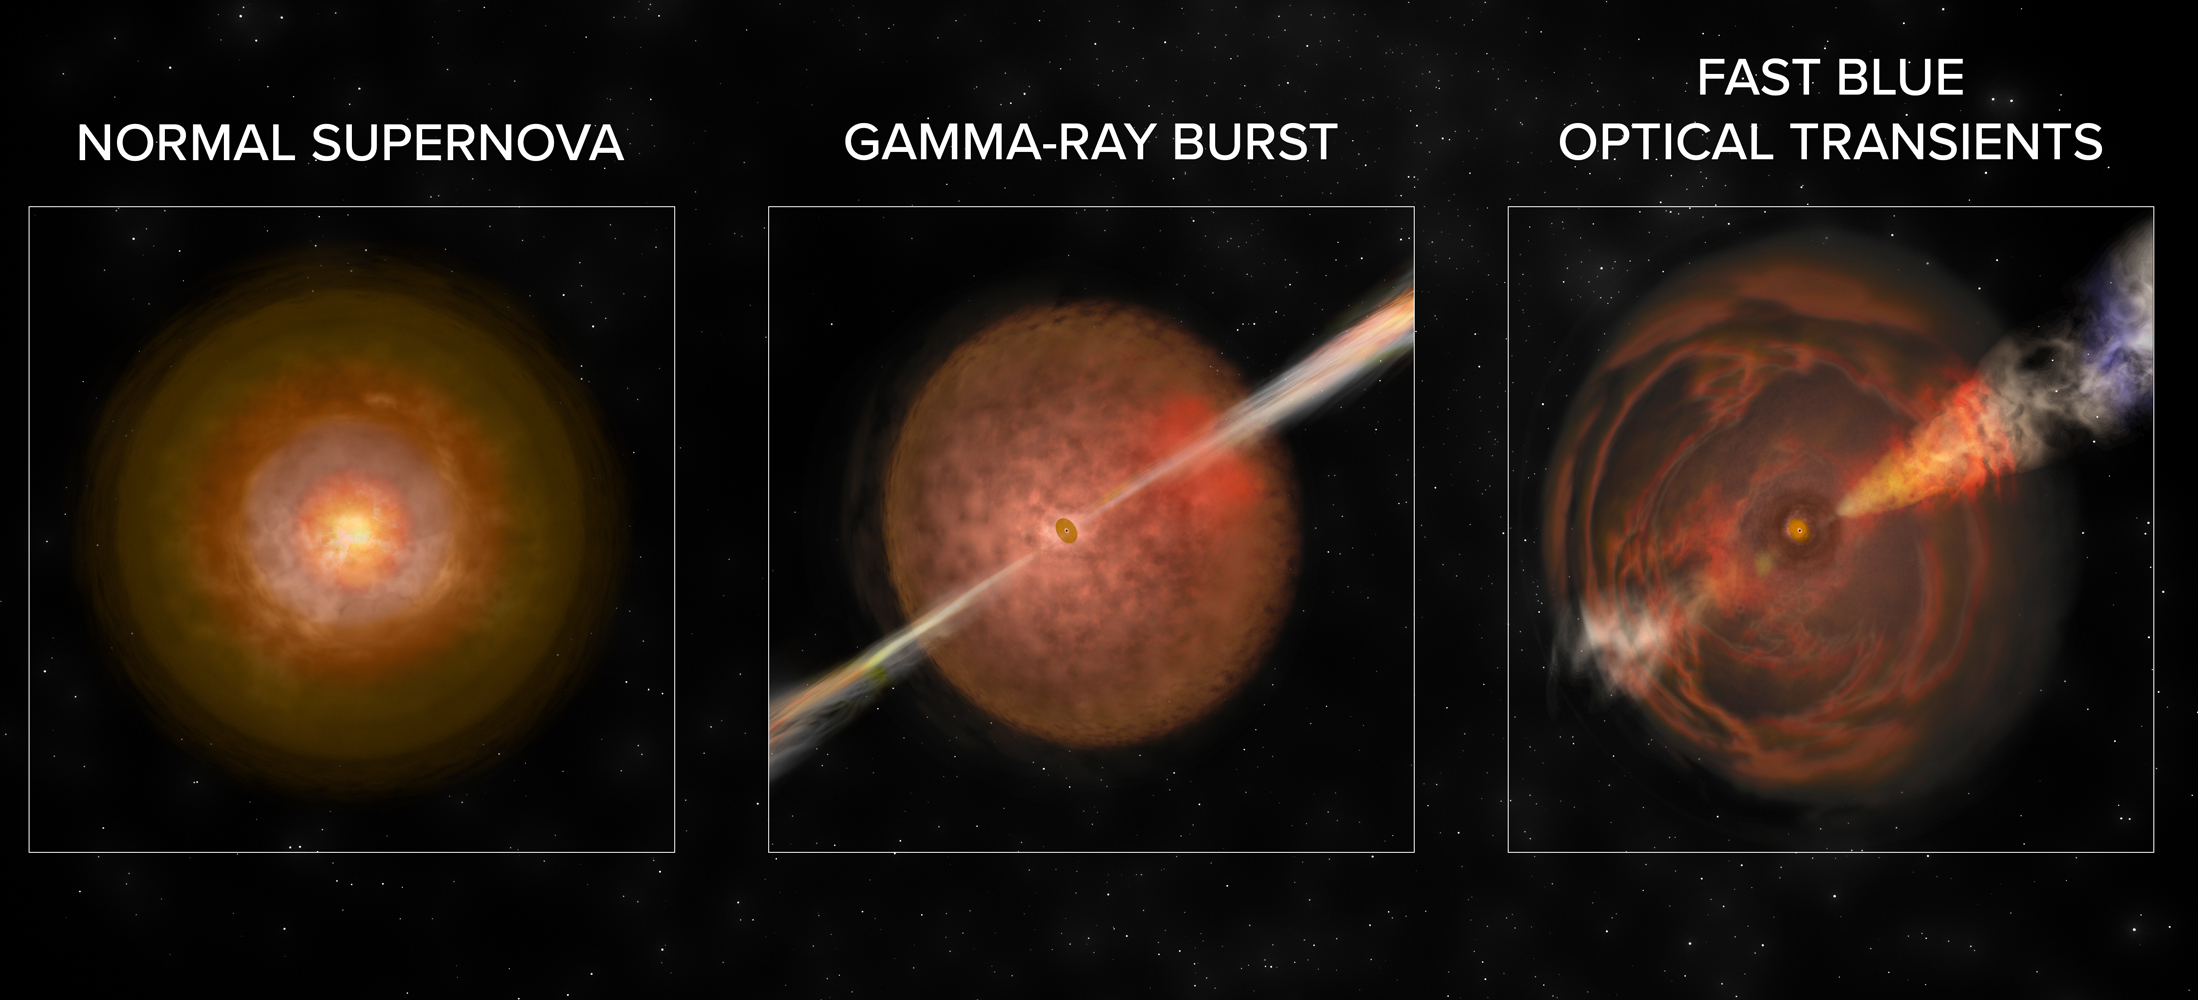 FBOTs, Gamma-Ray Bursts, and Supernovae